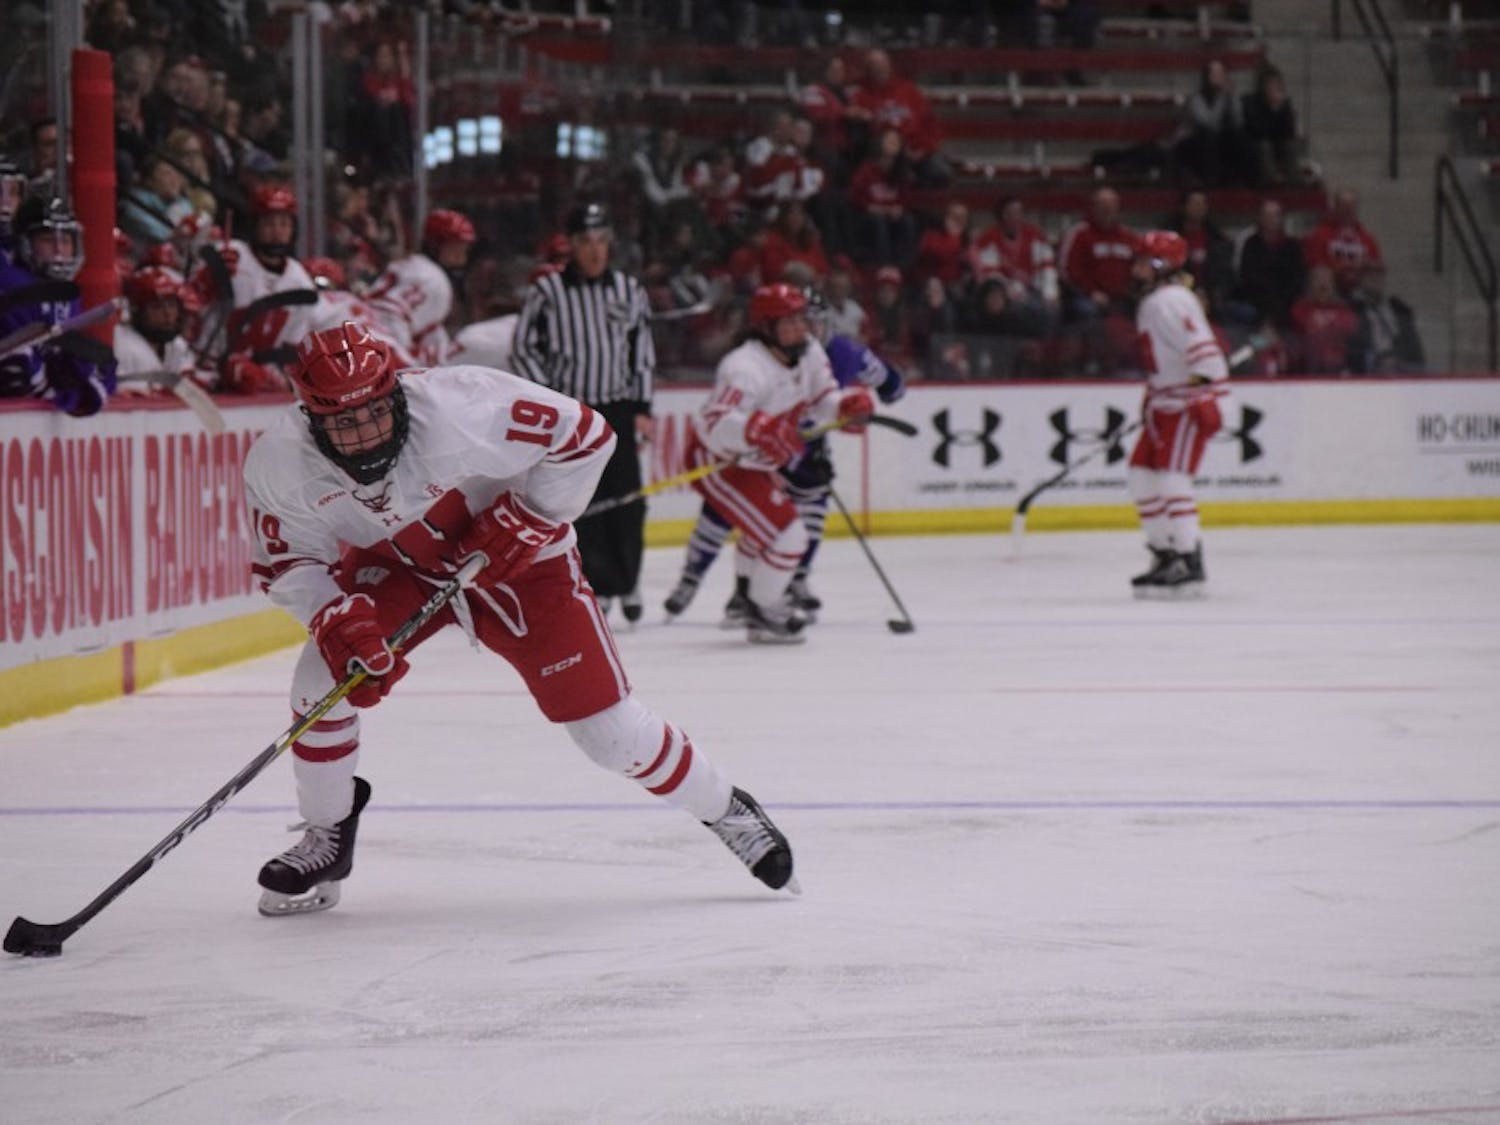 Annie Pankowski looks to lead Wisconsin to its second consecutive WCHA Final Face-Off title.